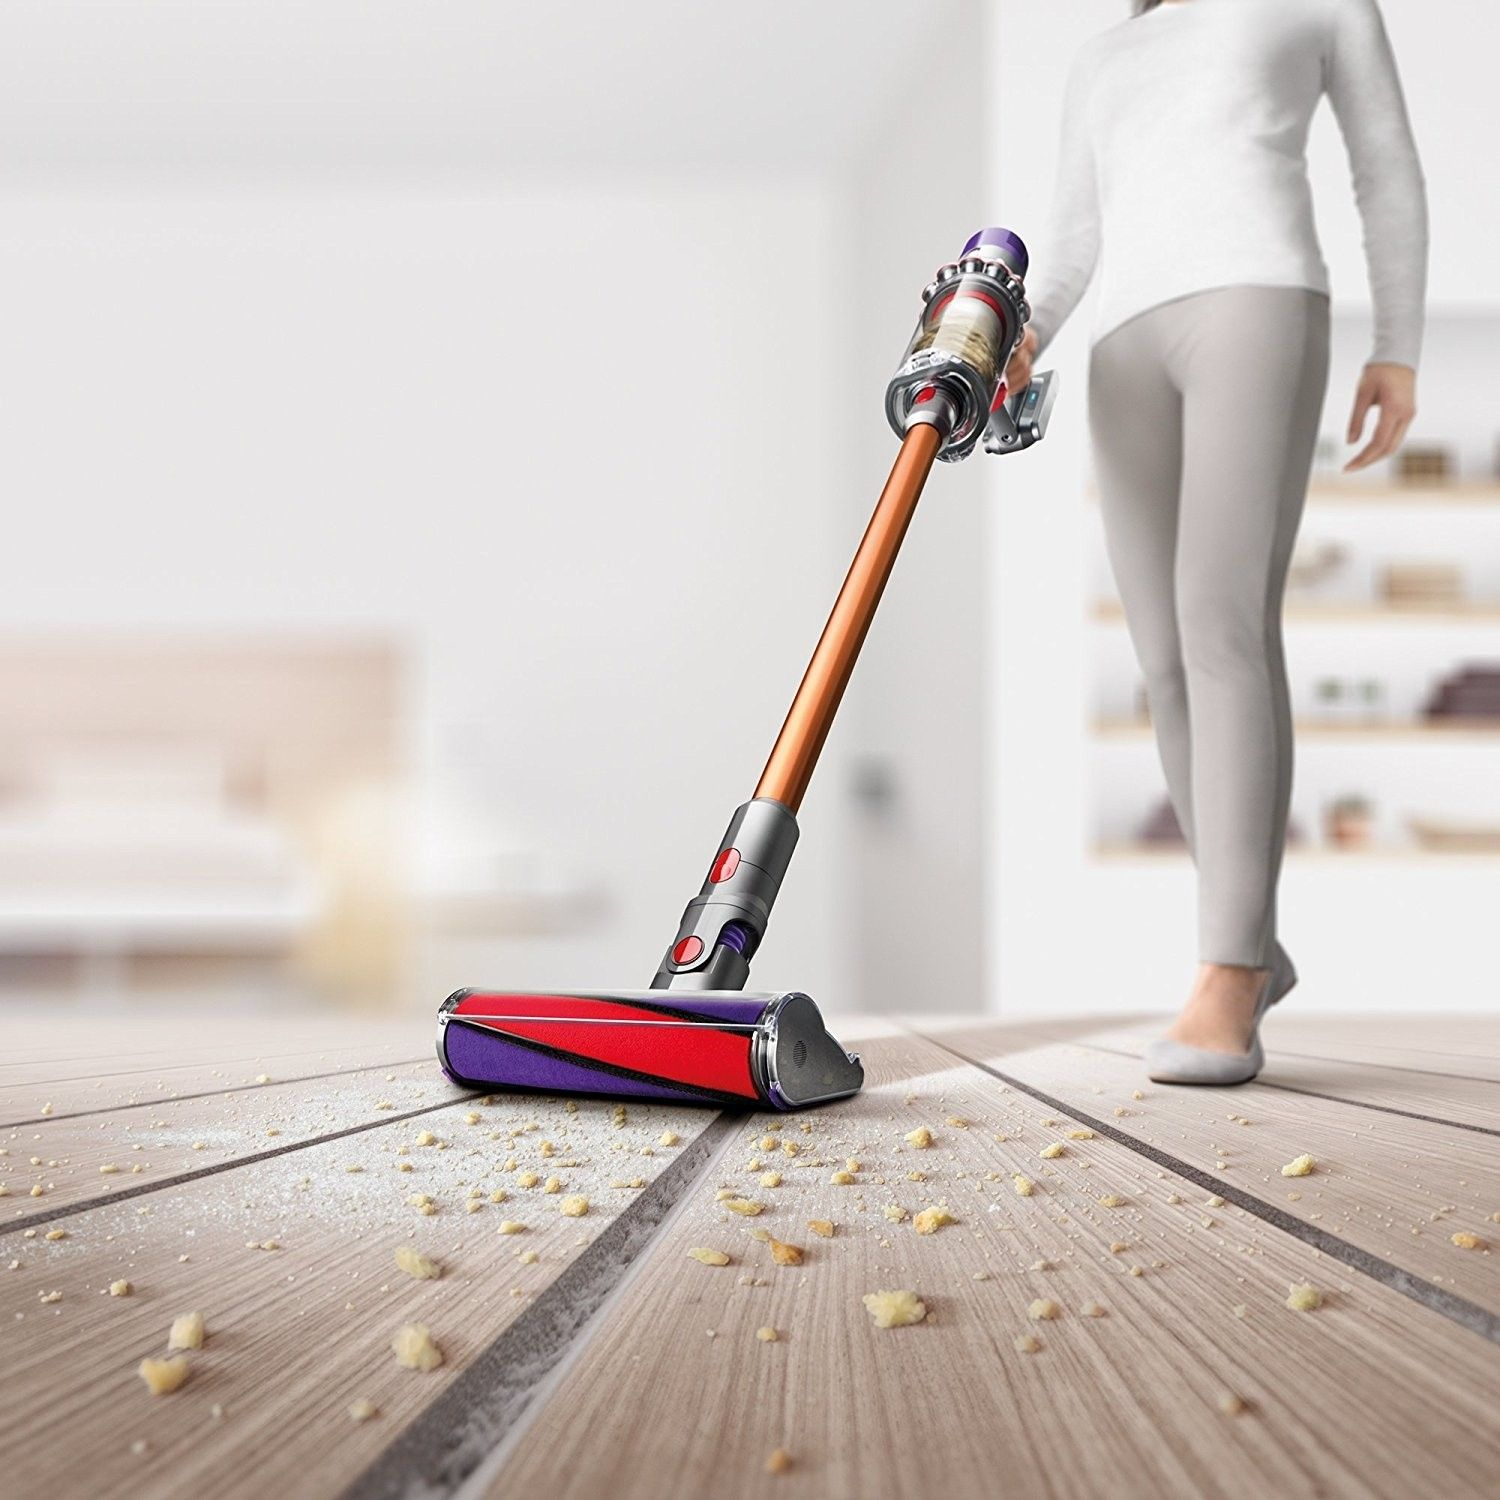 Dyson Cyclone V10 Absolute Cordless Stick Vacuum Cleaner Vacuum Cleaner Stick Vacuum